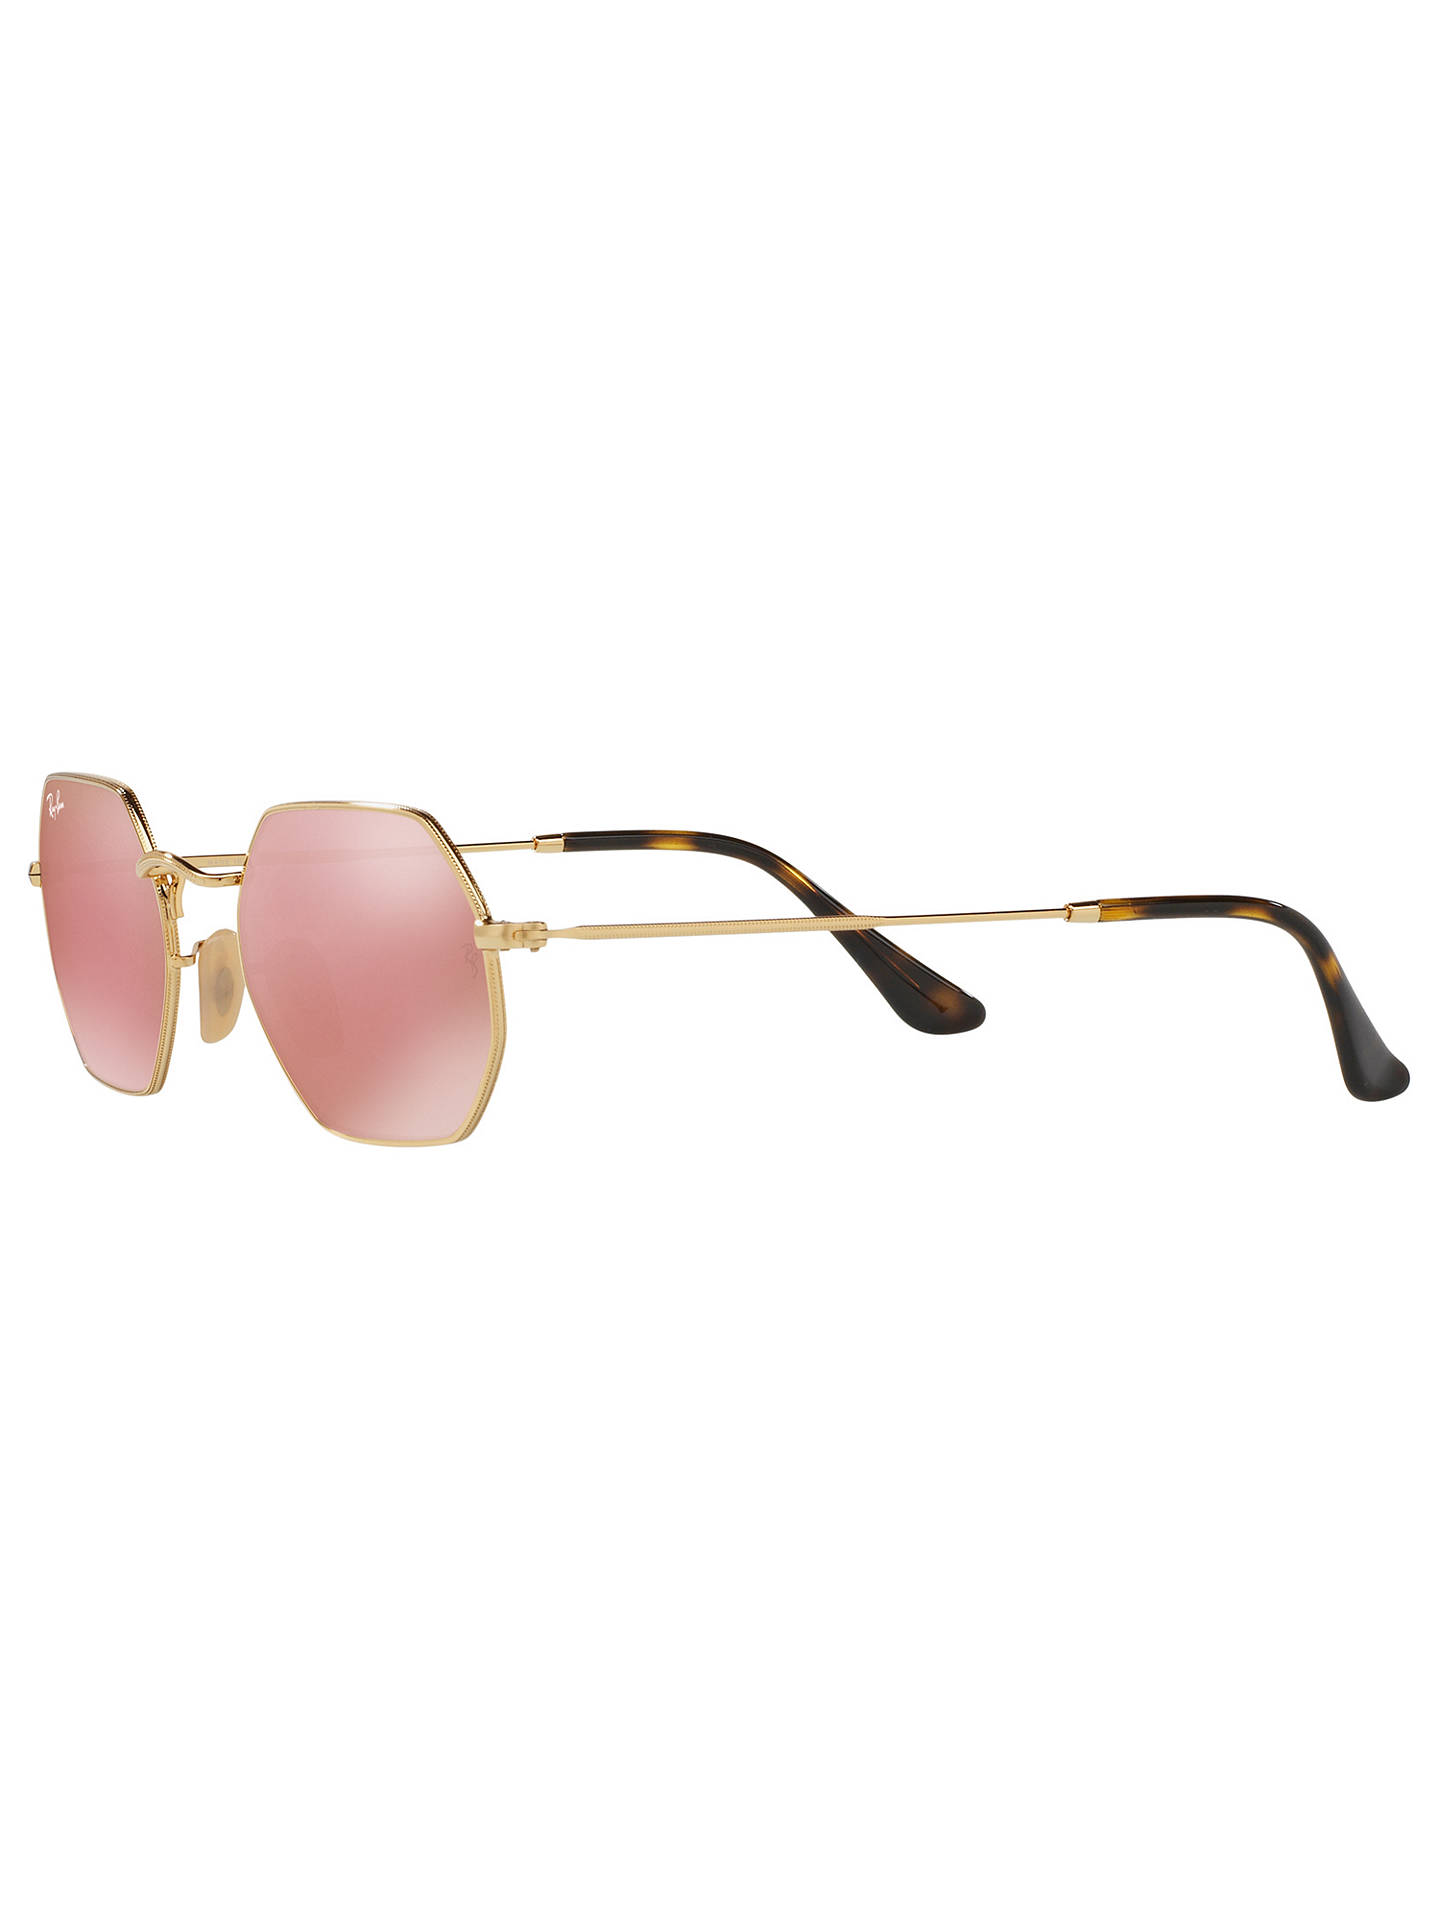 Buy Ray-Ban RB3556N Heptagonal Sunglasses, Gold/Mirror Pink Online at johnlewis.com